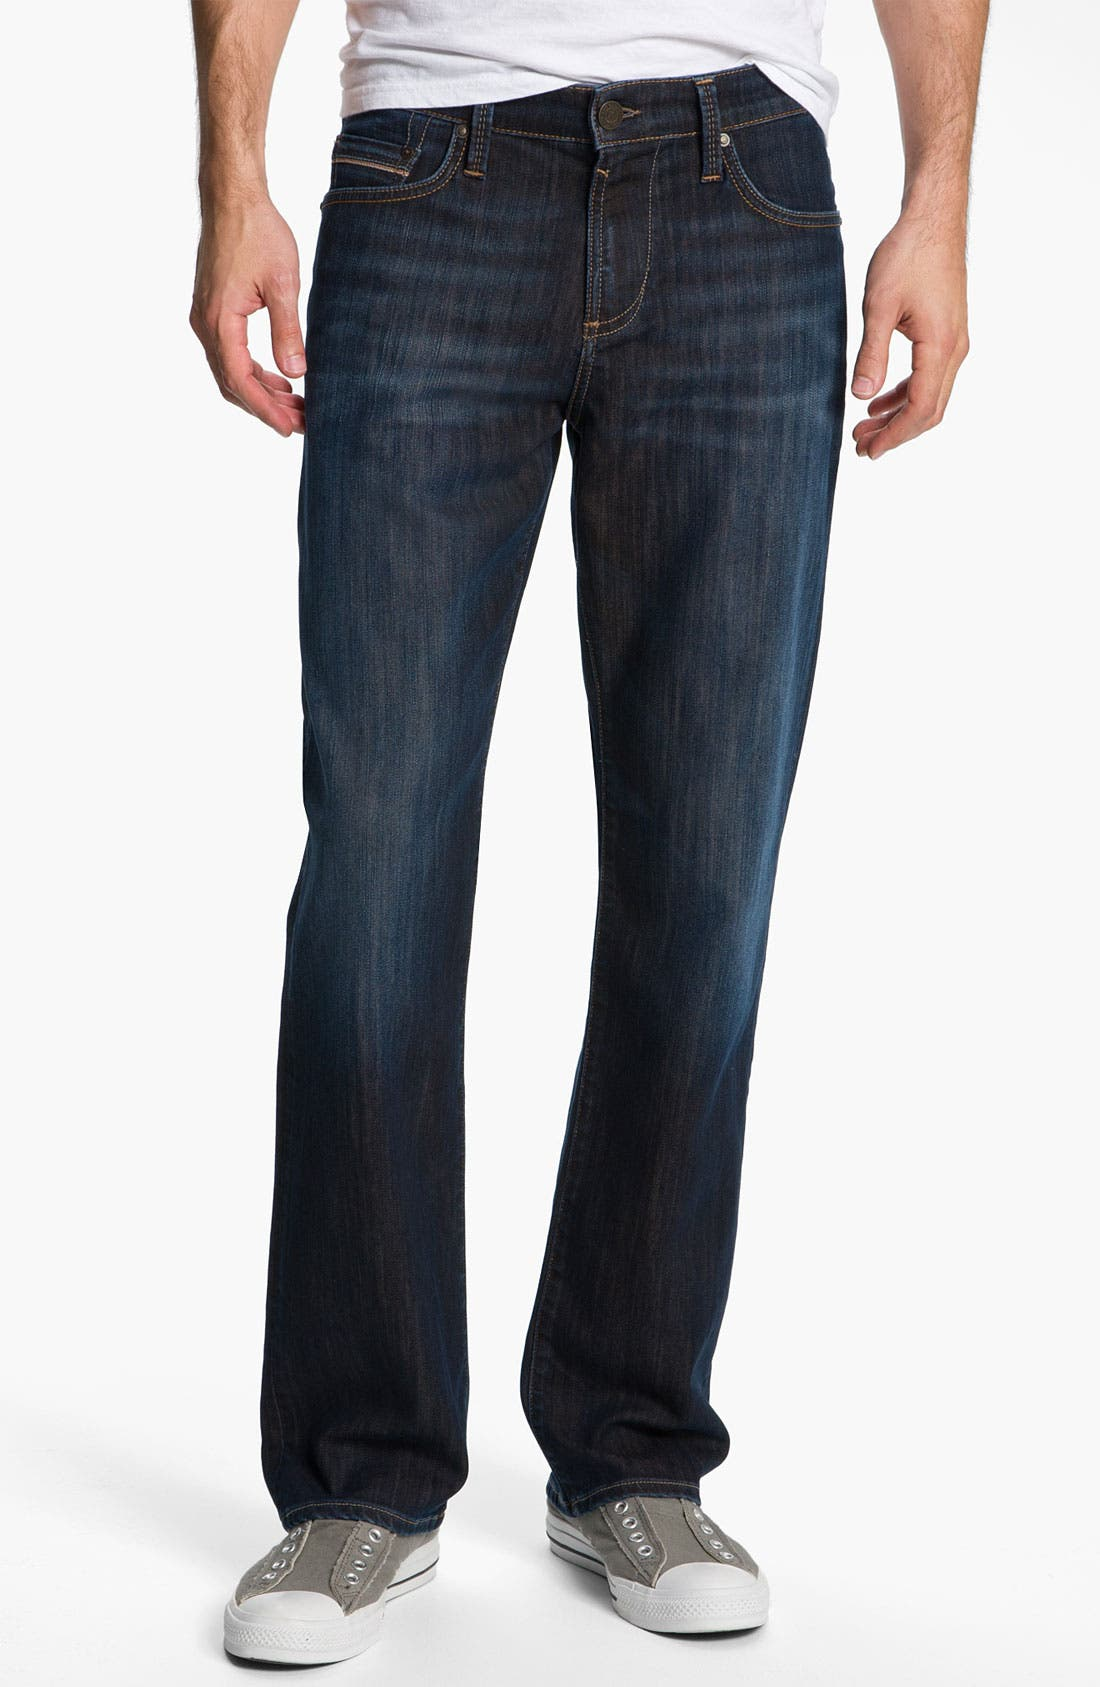 Alternate Image 1 Selected - Mavi Jeans 'Matt' Relaxed Fit Jeans (Dark Kensington)